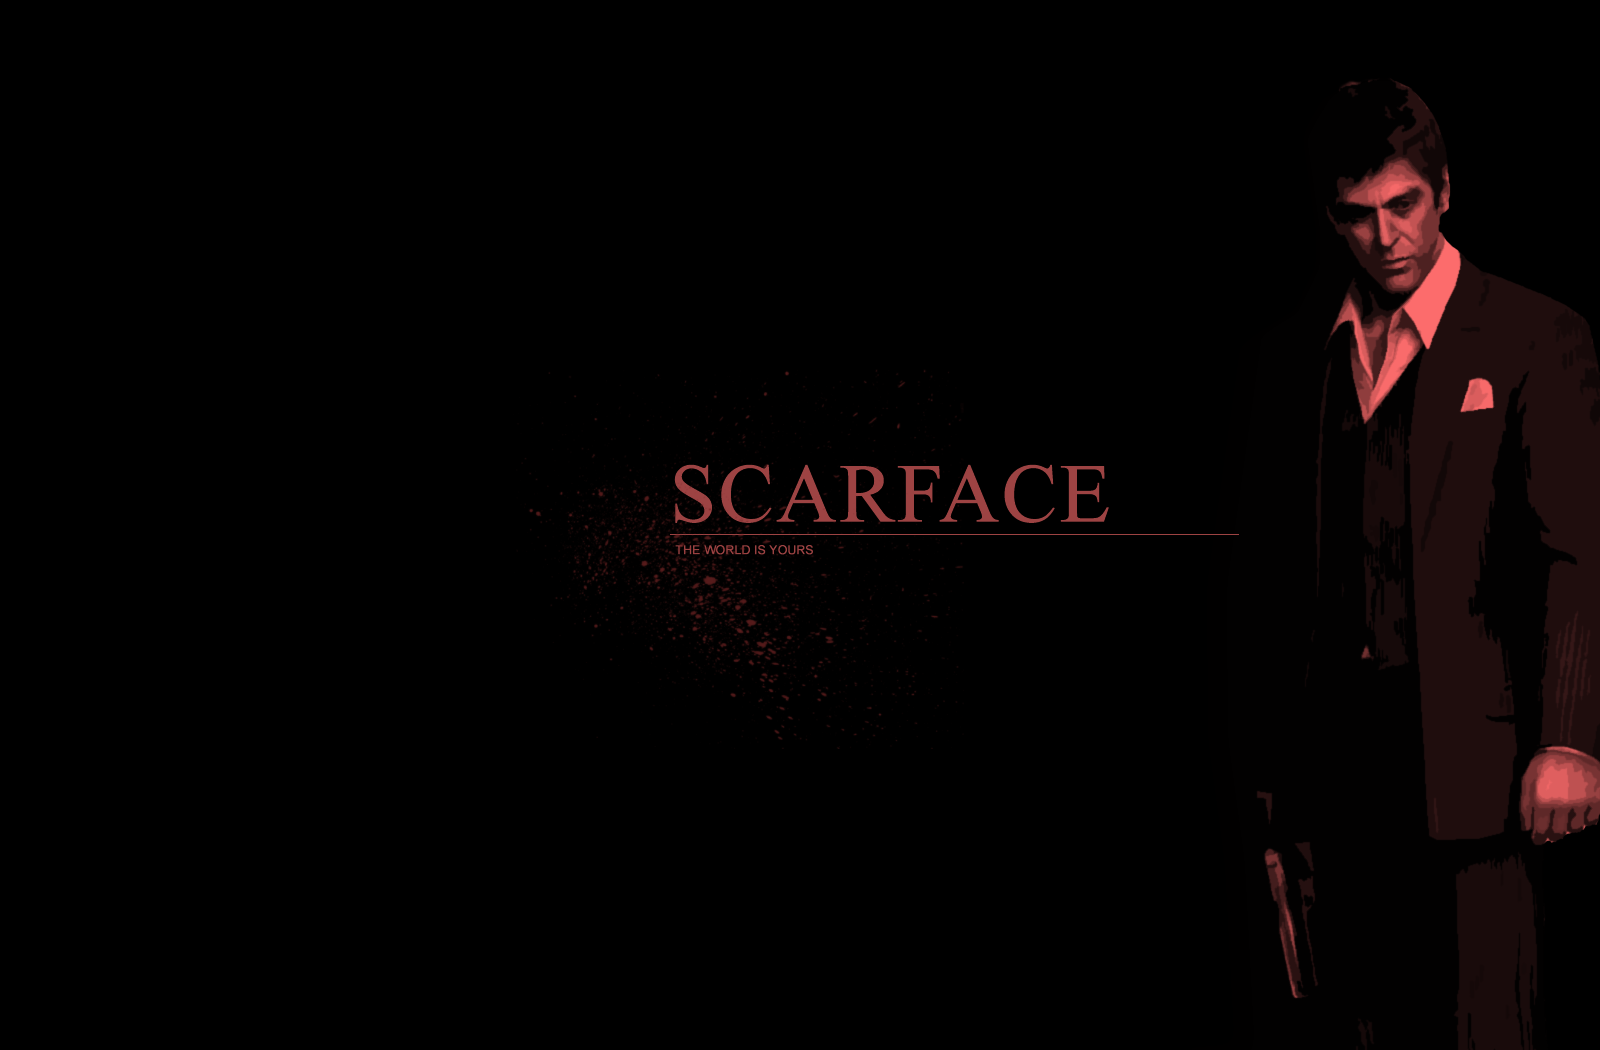 Scarface Wallpapers HD Wallpaper Cave Images Wallpapers